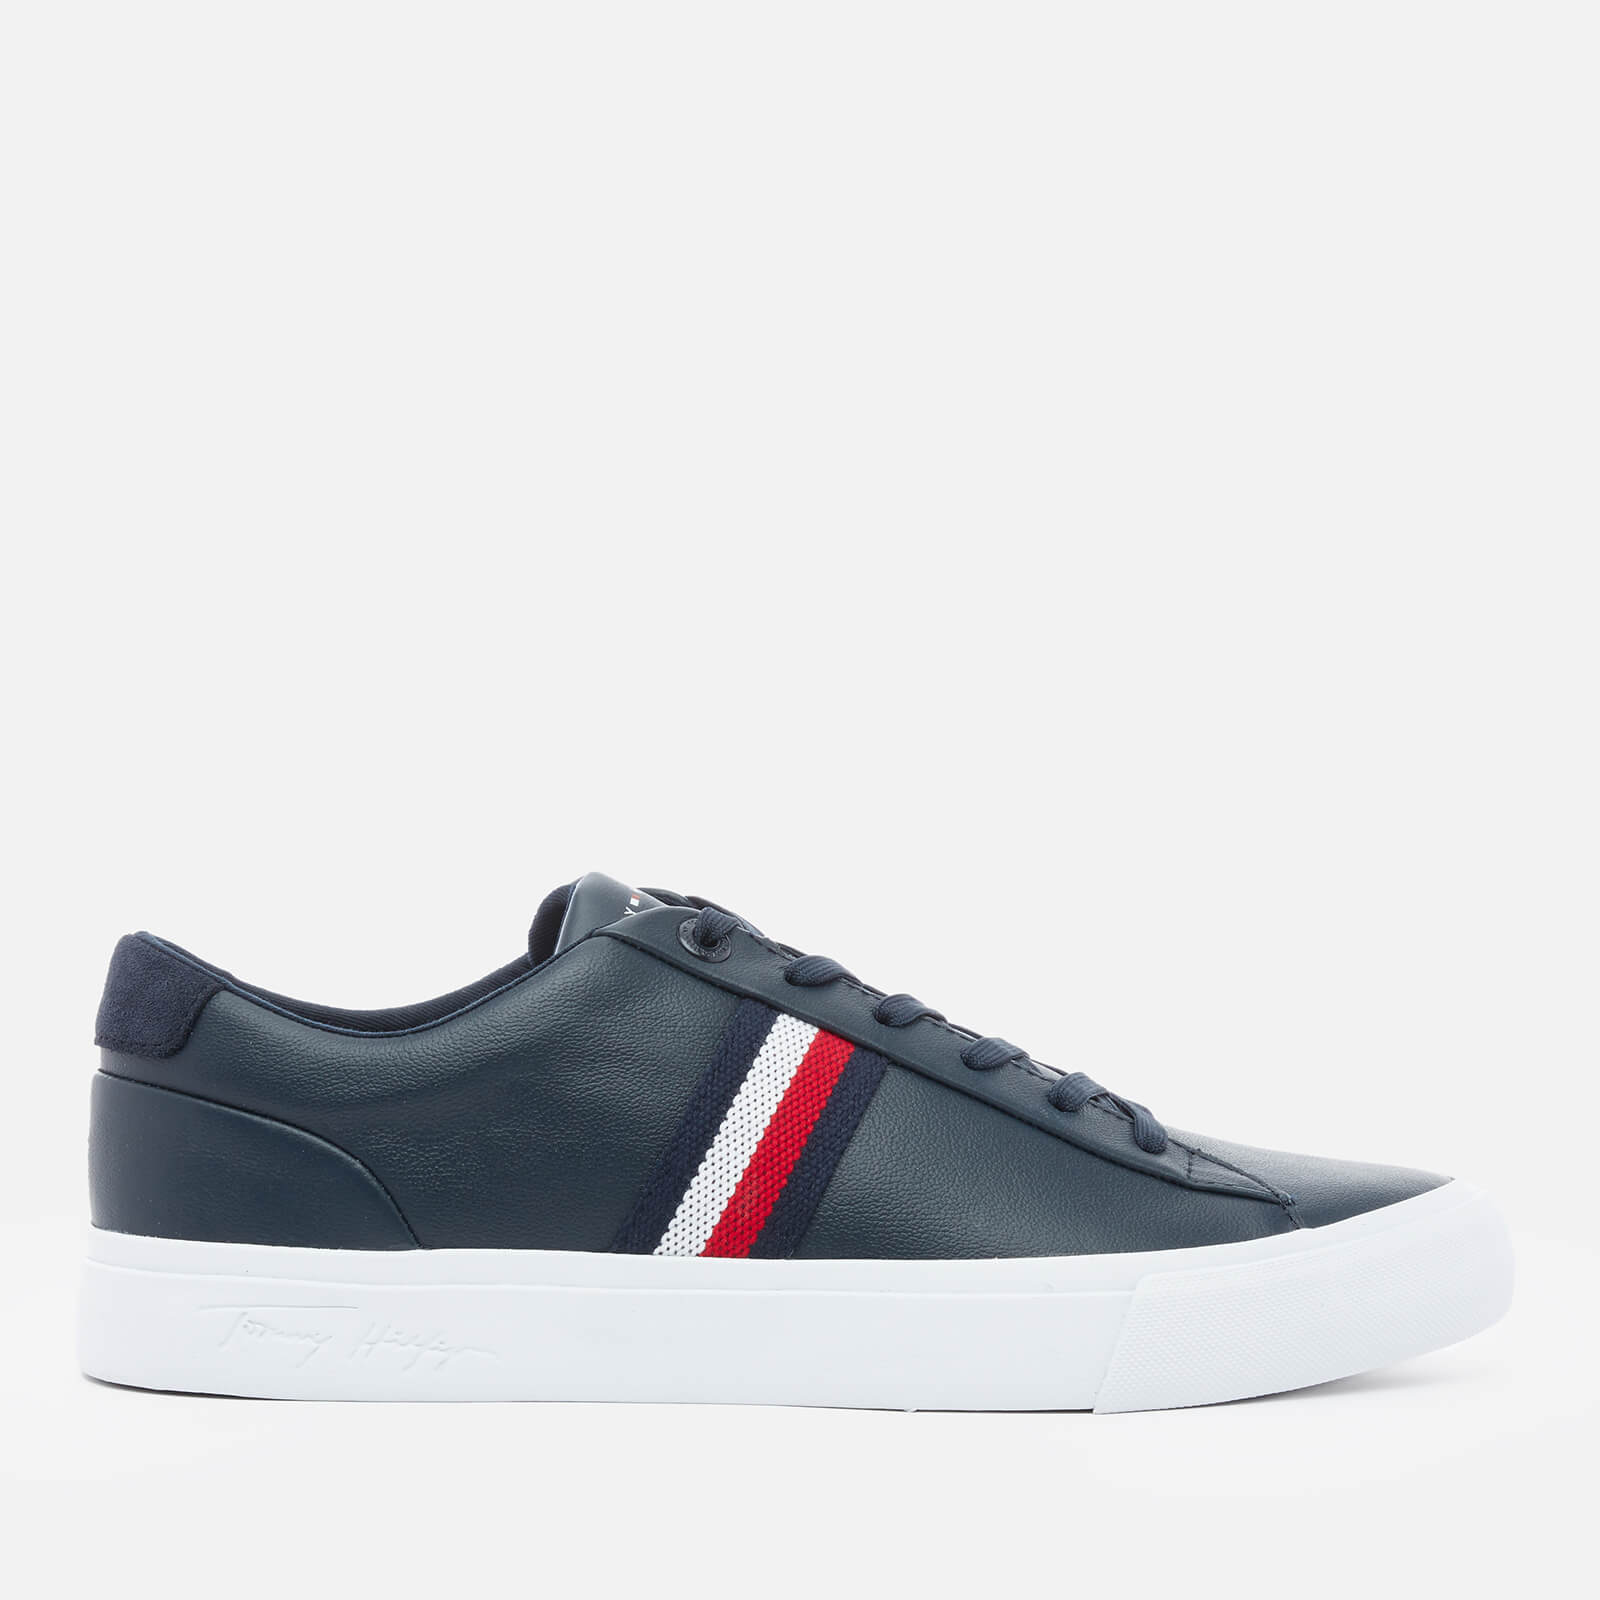 Tommy Hilfiger Men's Corporate Leather Low Top Trainers - Desert Sky - UK 10